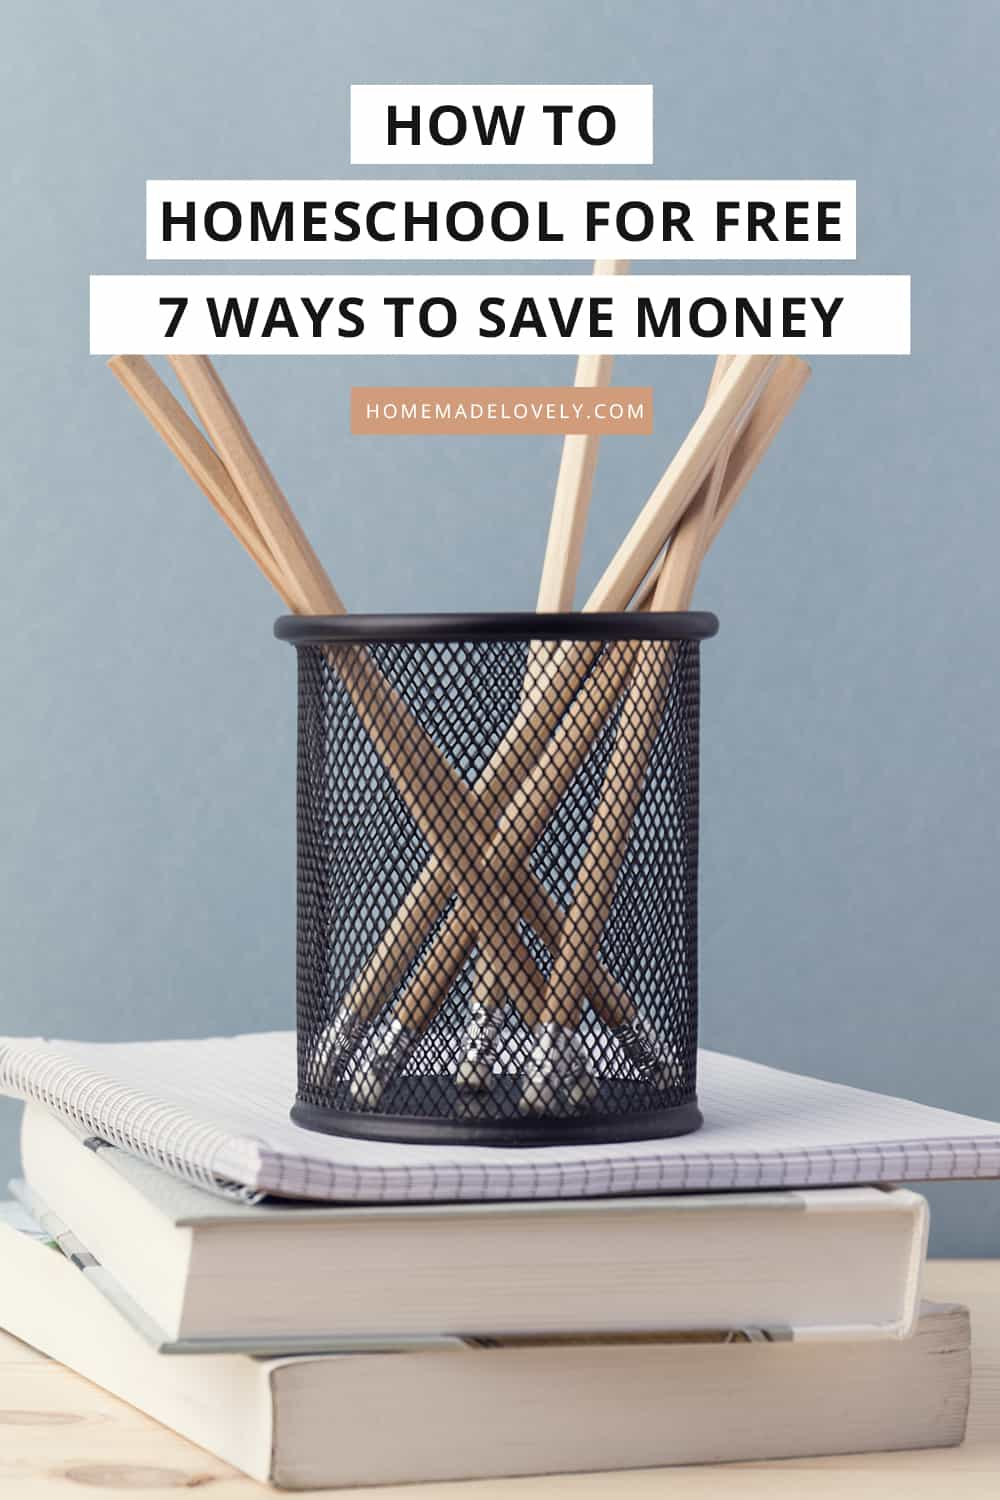 pencils in can on books with text overlay that says how to homeschool for free - 7 ways to save money